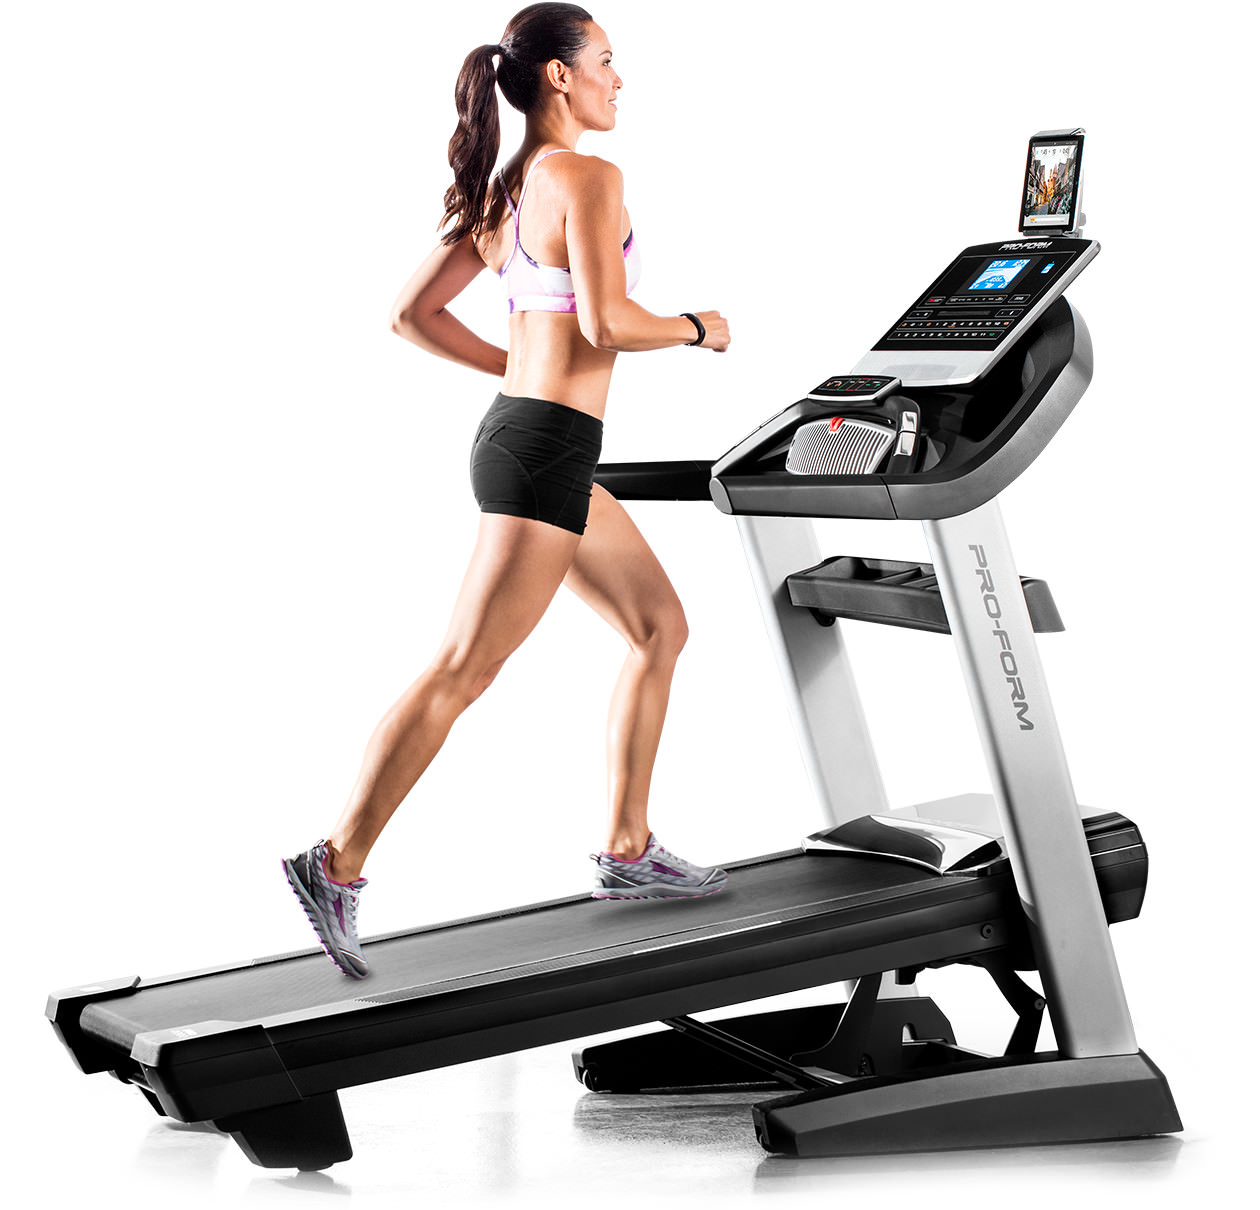 WorkoutWarehouse Treadmills ProForm Pro 2000